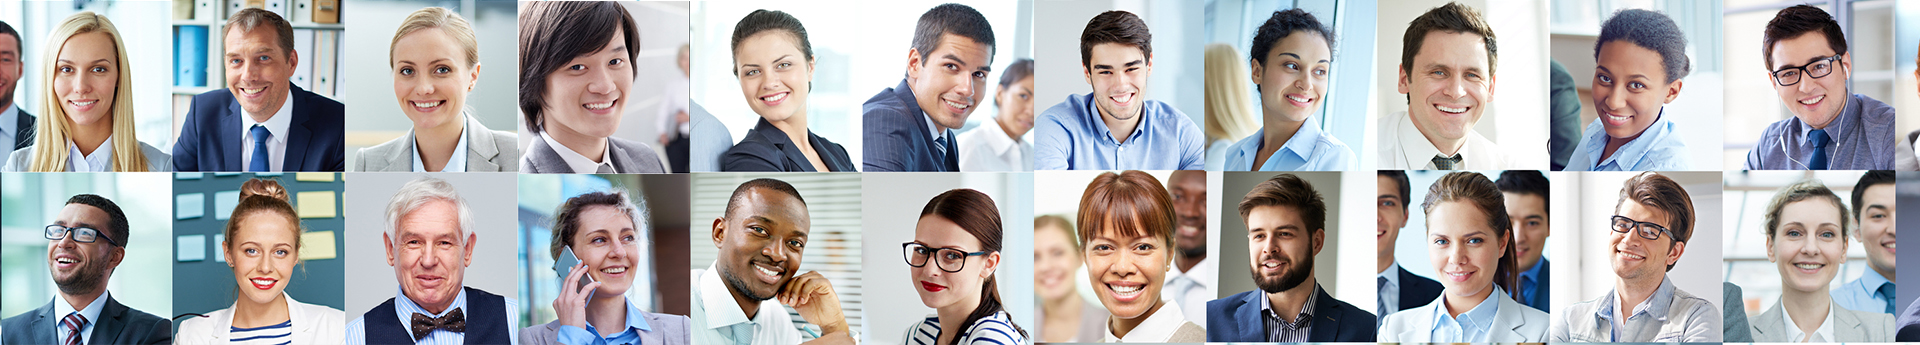 Faces of job seekers